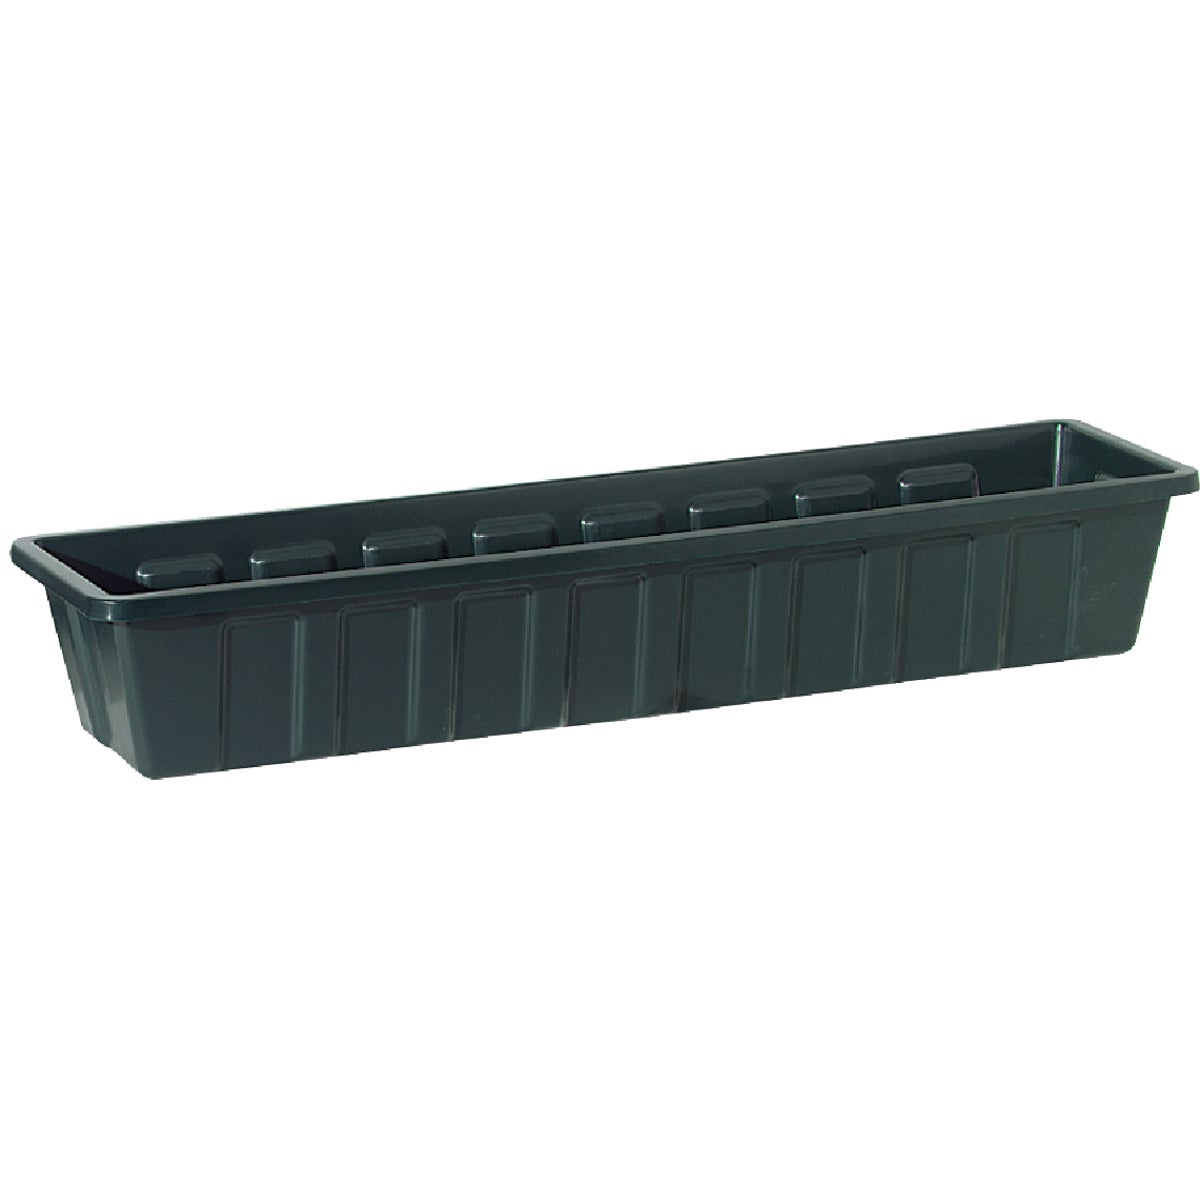 "36"" FLOWER BOX PLANTER - 02361 by Novelty Mfg Co"